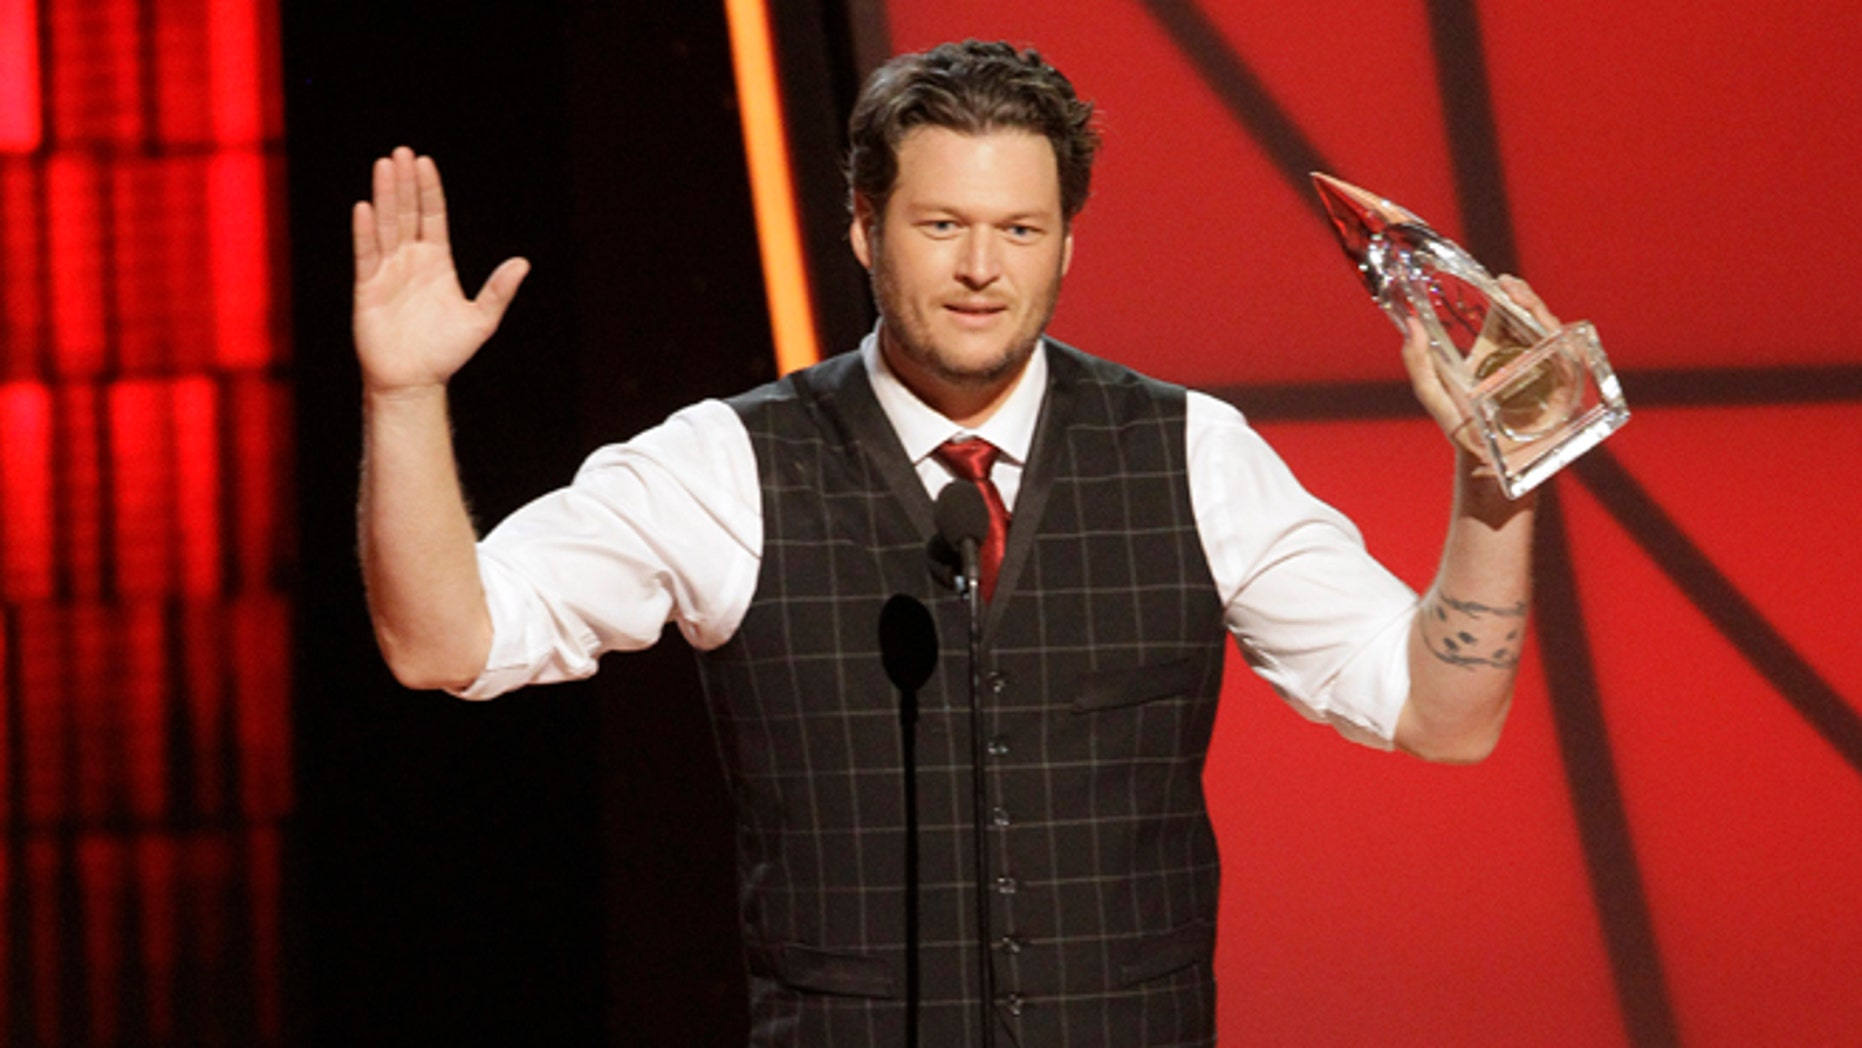 Nov. 1, 2012: Blake Shelton accepts the award for entertainer of the year at the 46th Annual Country Music Awards at the Bridgestone Arena in Nashville, Tenn.